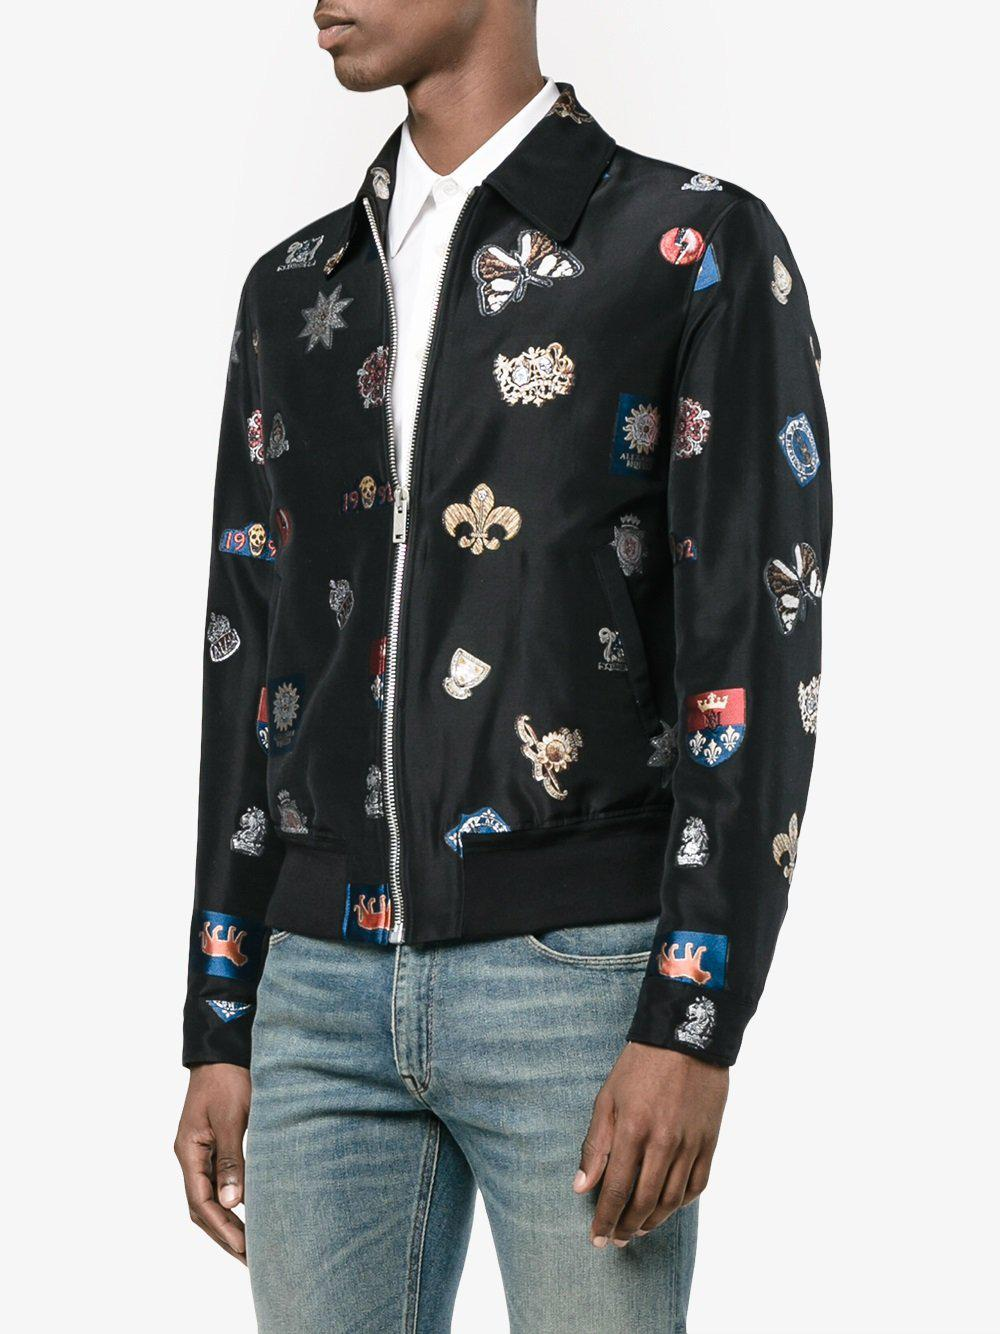 Alexander McQueen Silk Black Embroidered Satin Bomber Jacket - Size 40 for Men